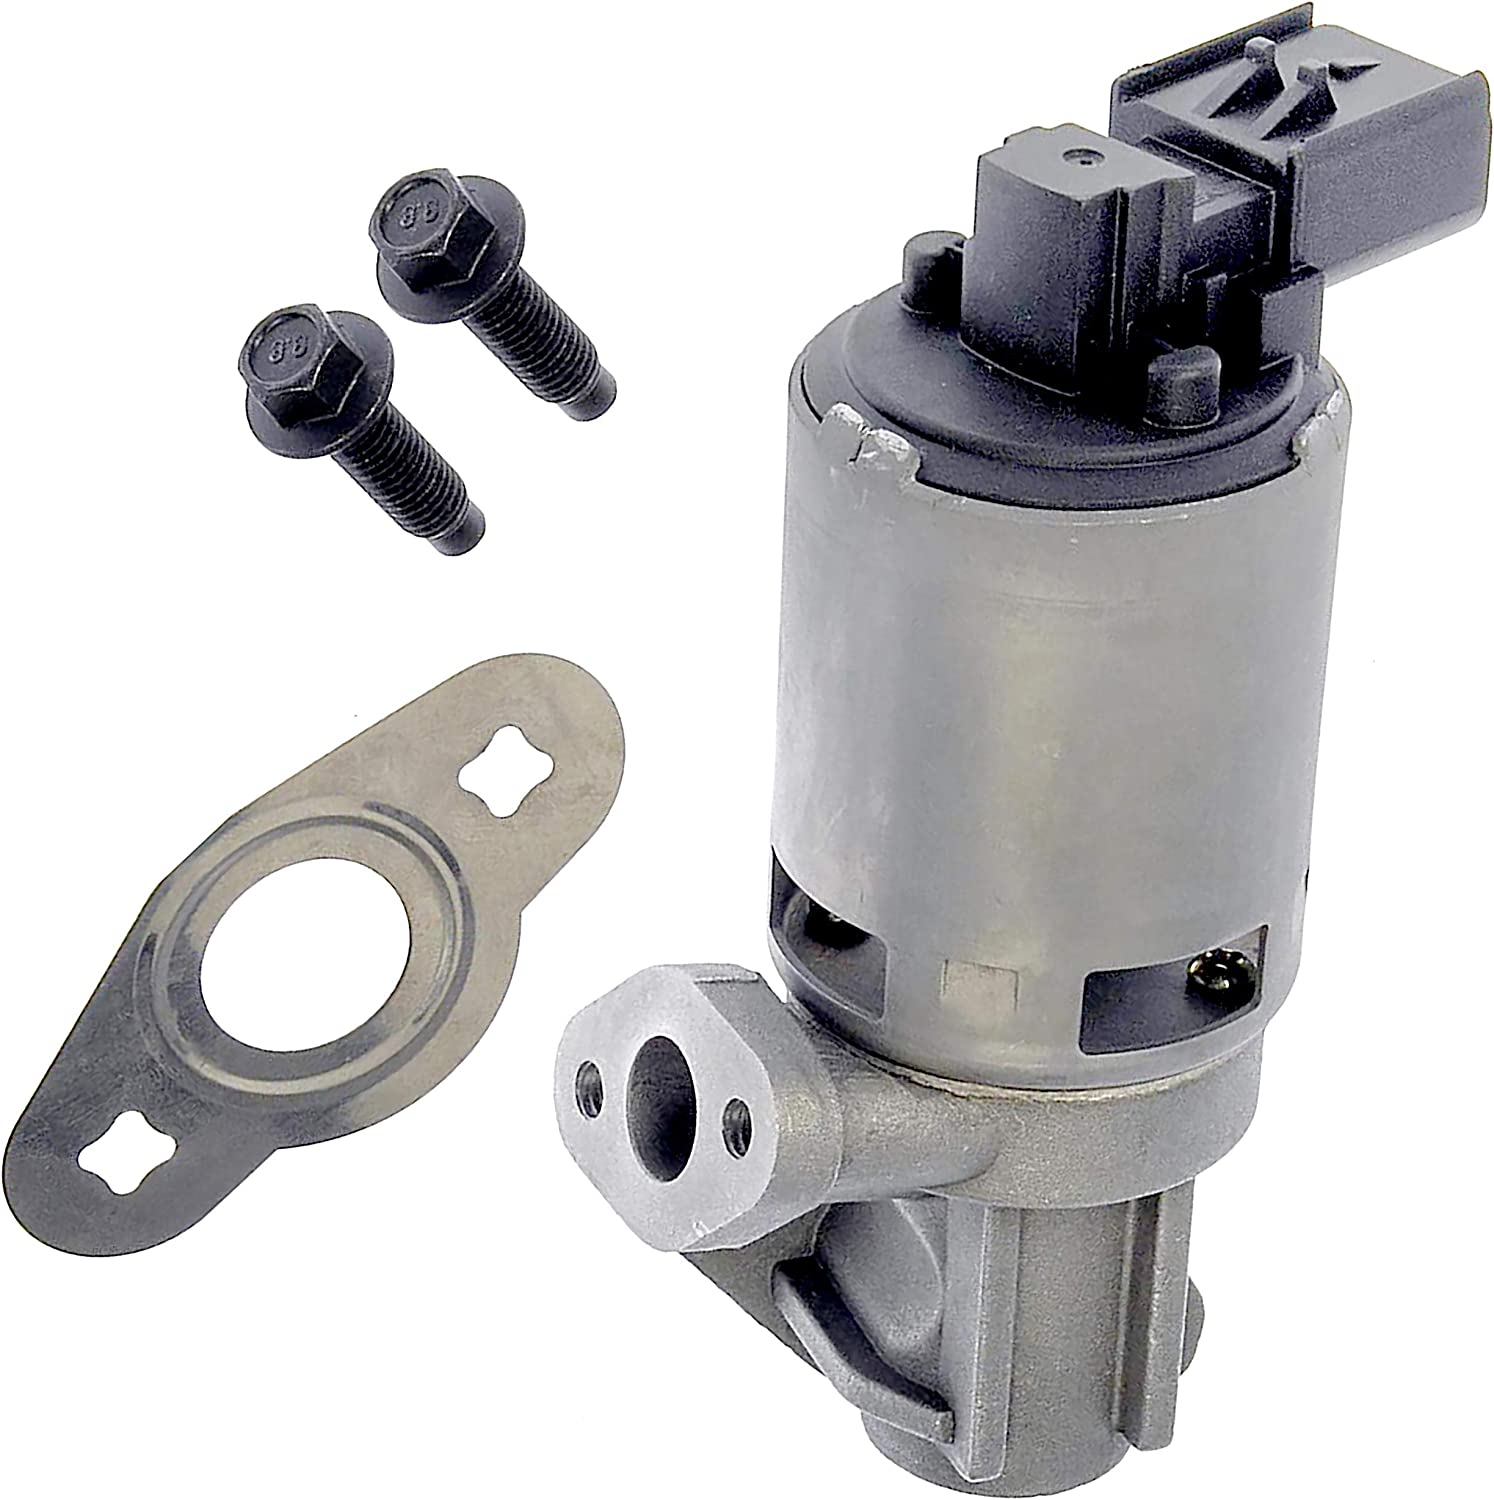 APDTY 022314 Exhaust Gas Replaces Valve Recirculation 4861662AE Max 48% Max 80% OFF OFF